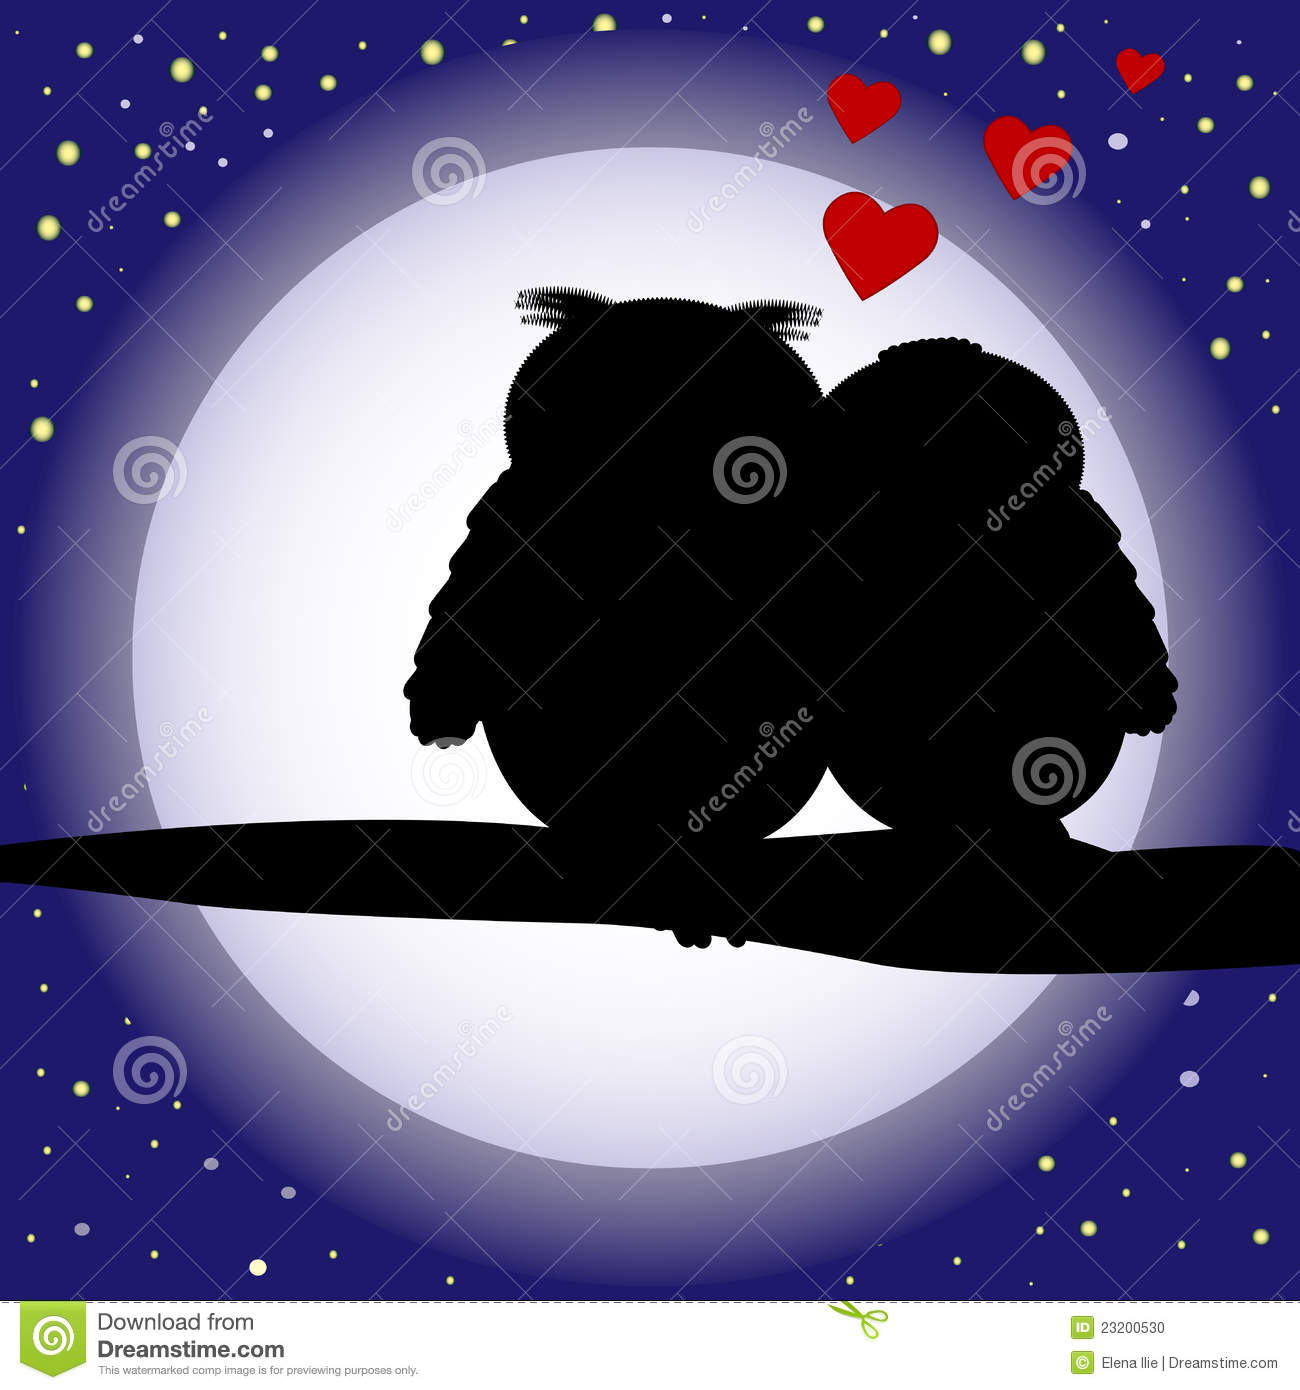 More similar stock images of ` Love owls silhouette background `